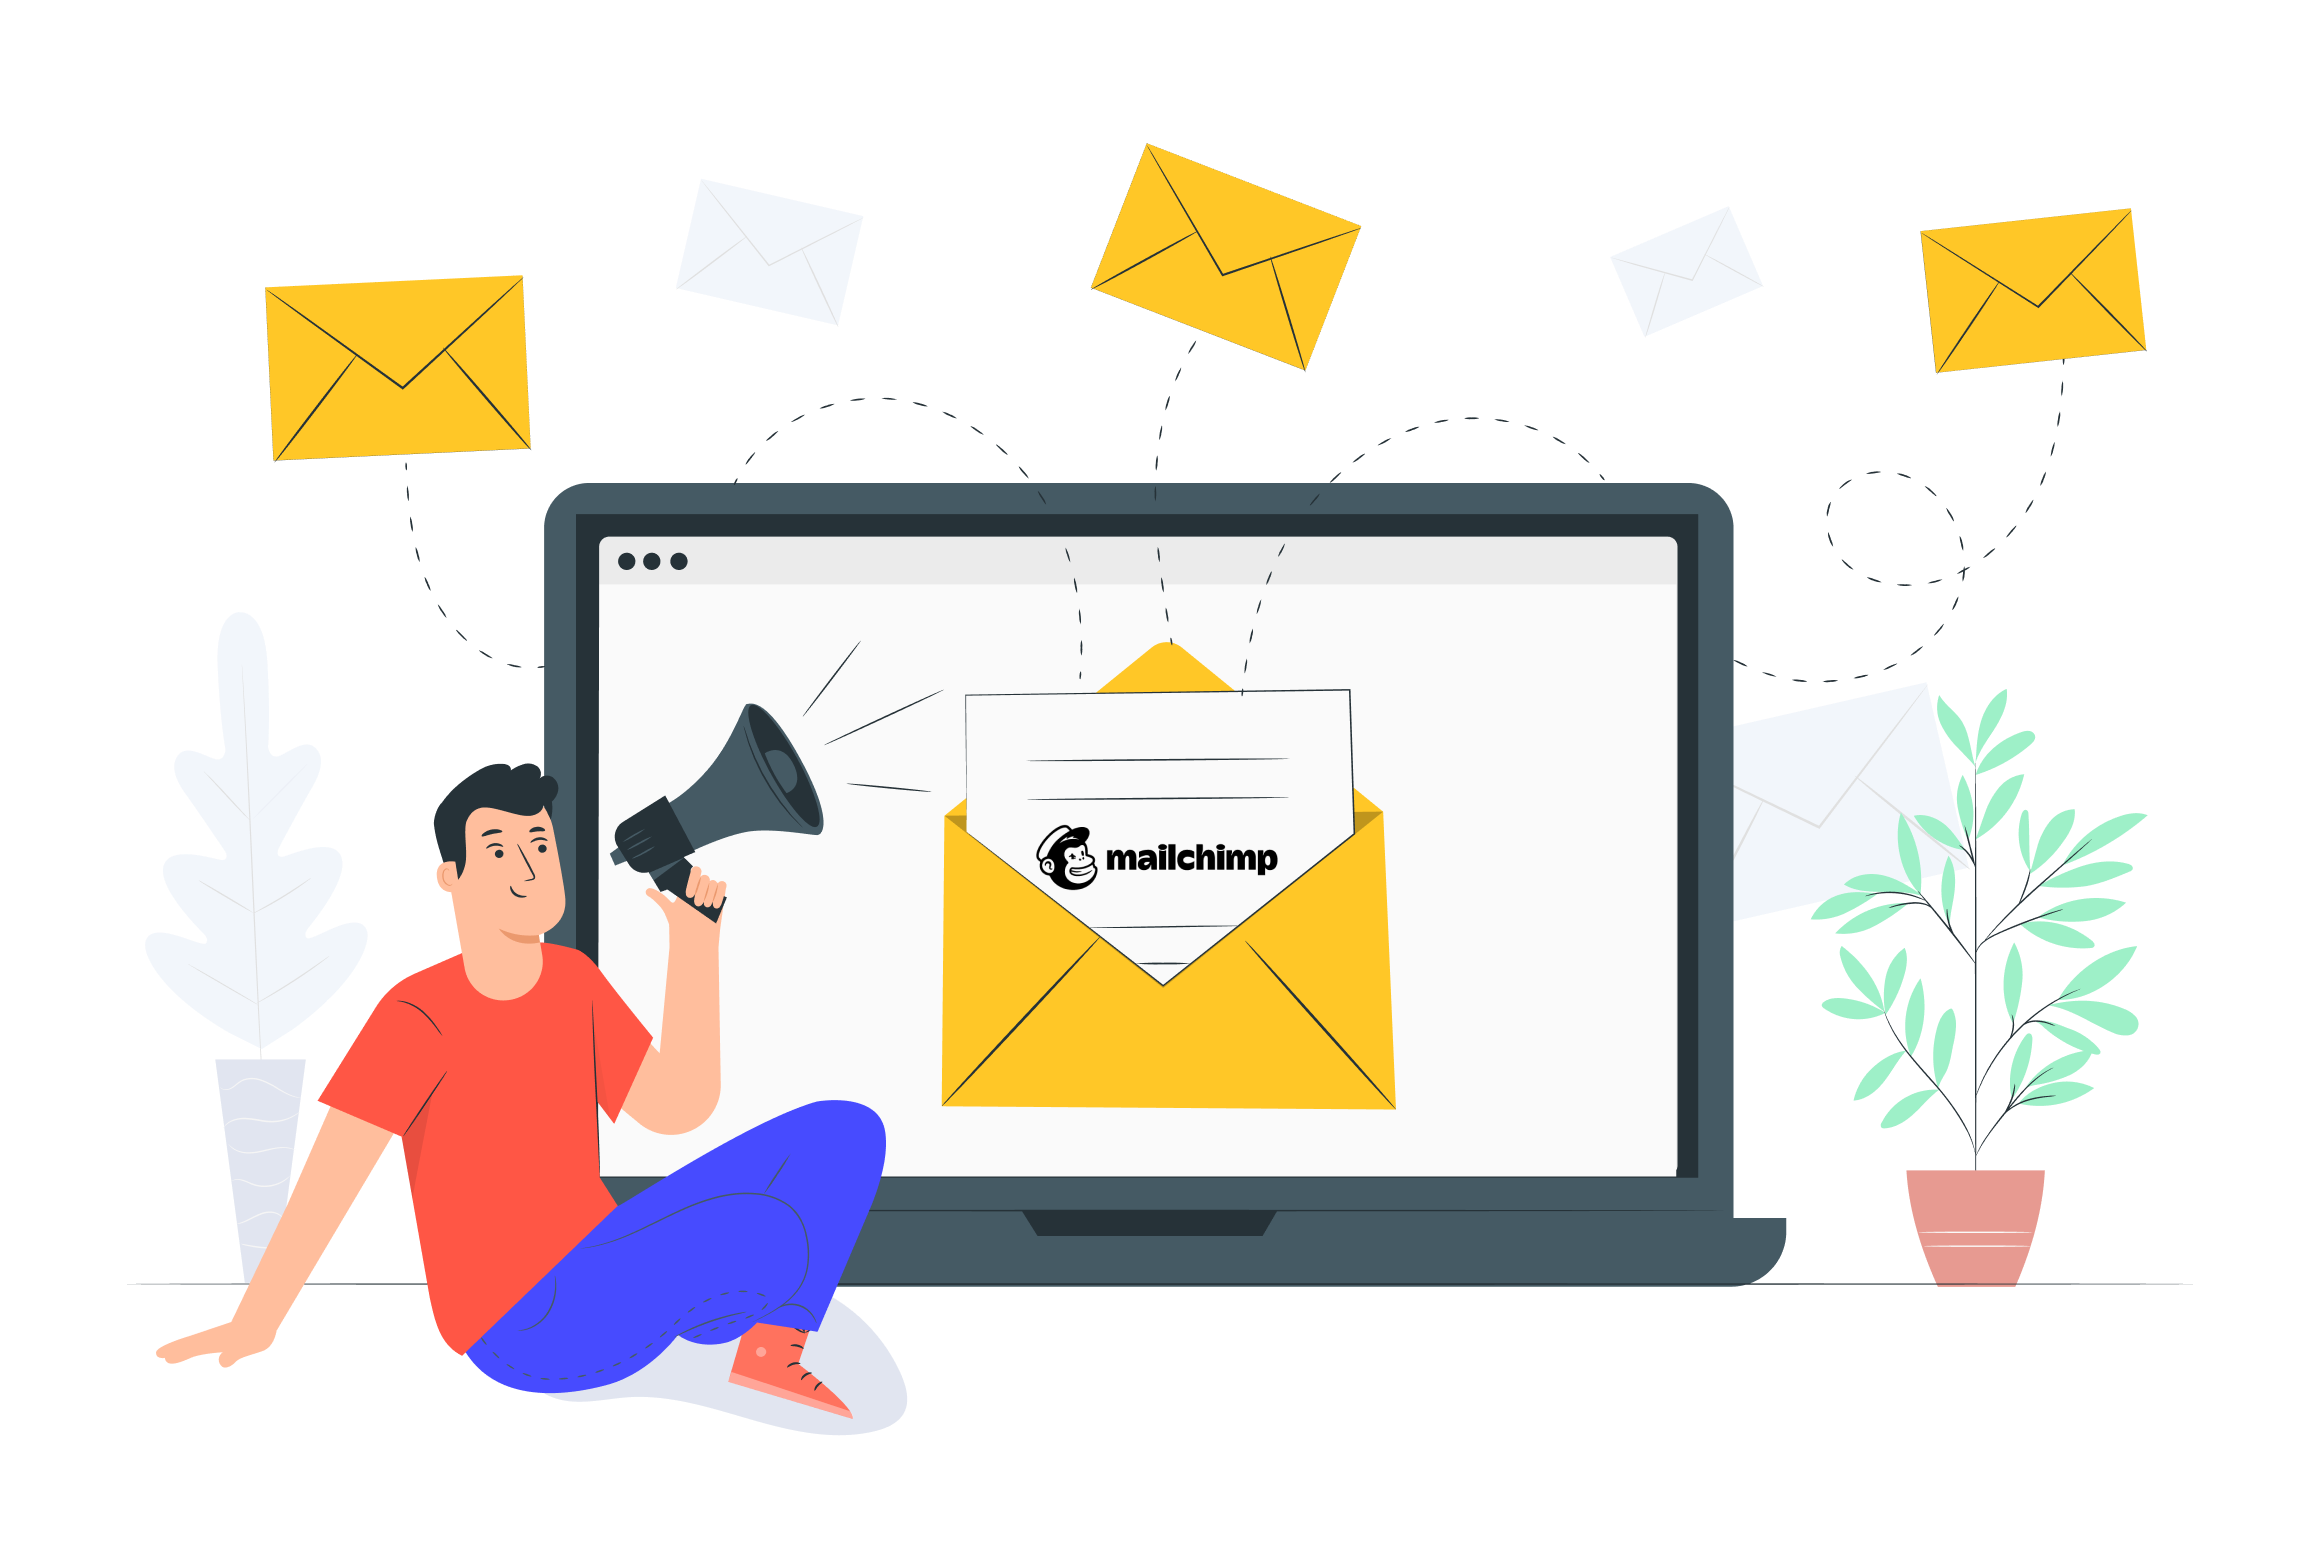 8 Mailchimp Metrics to Measure your Email Marketing Campaign Success